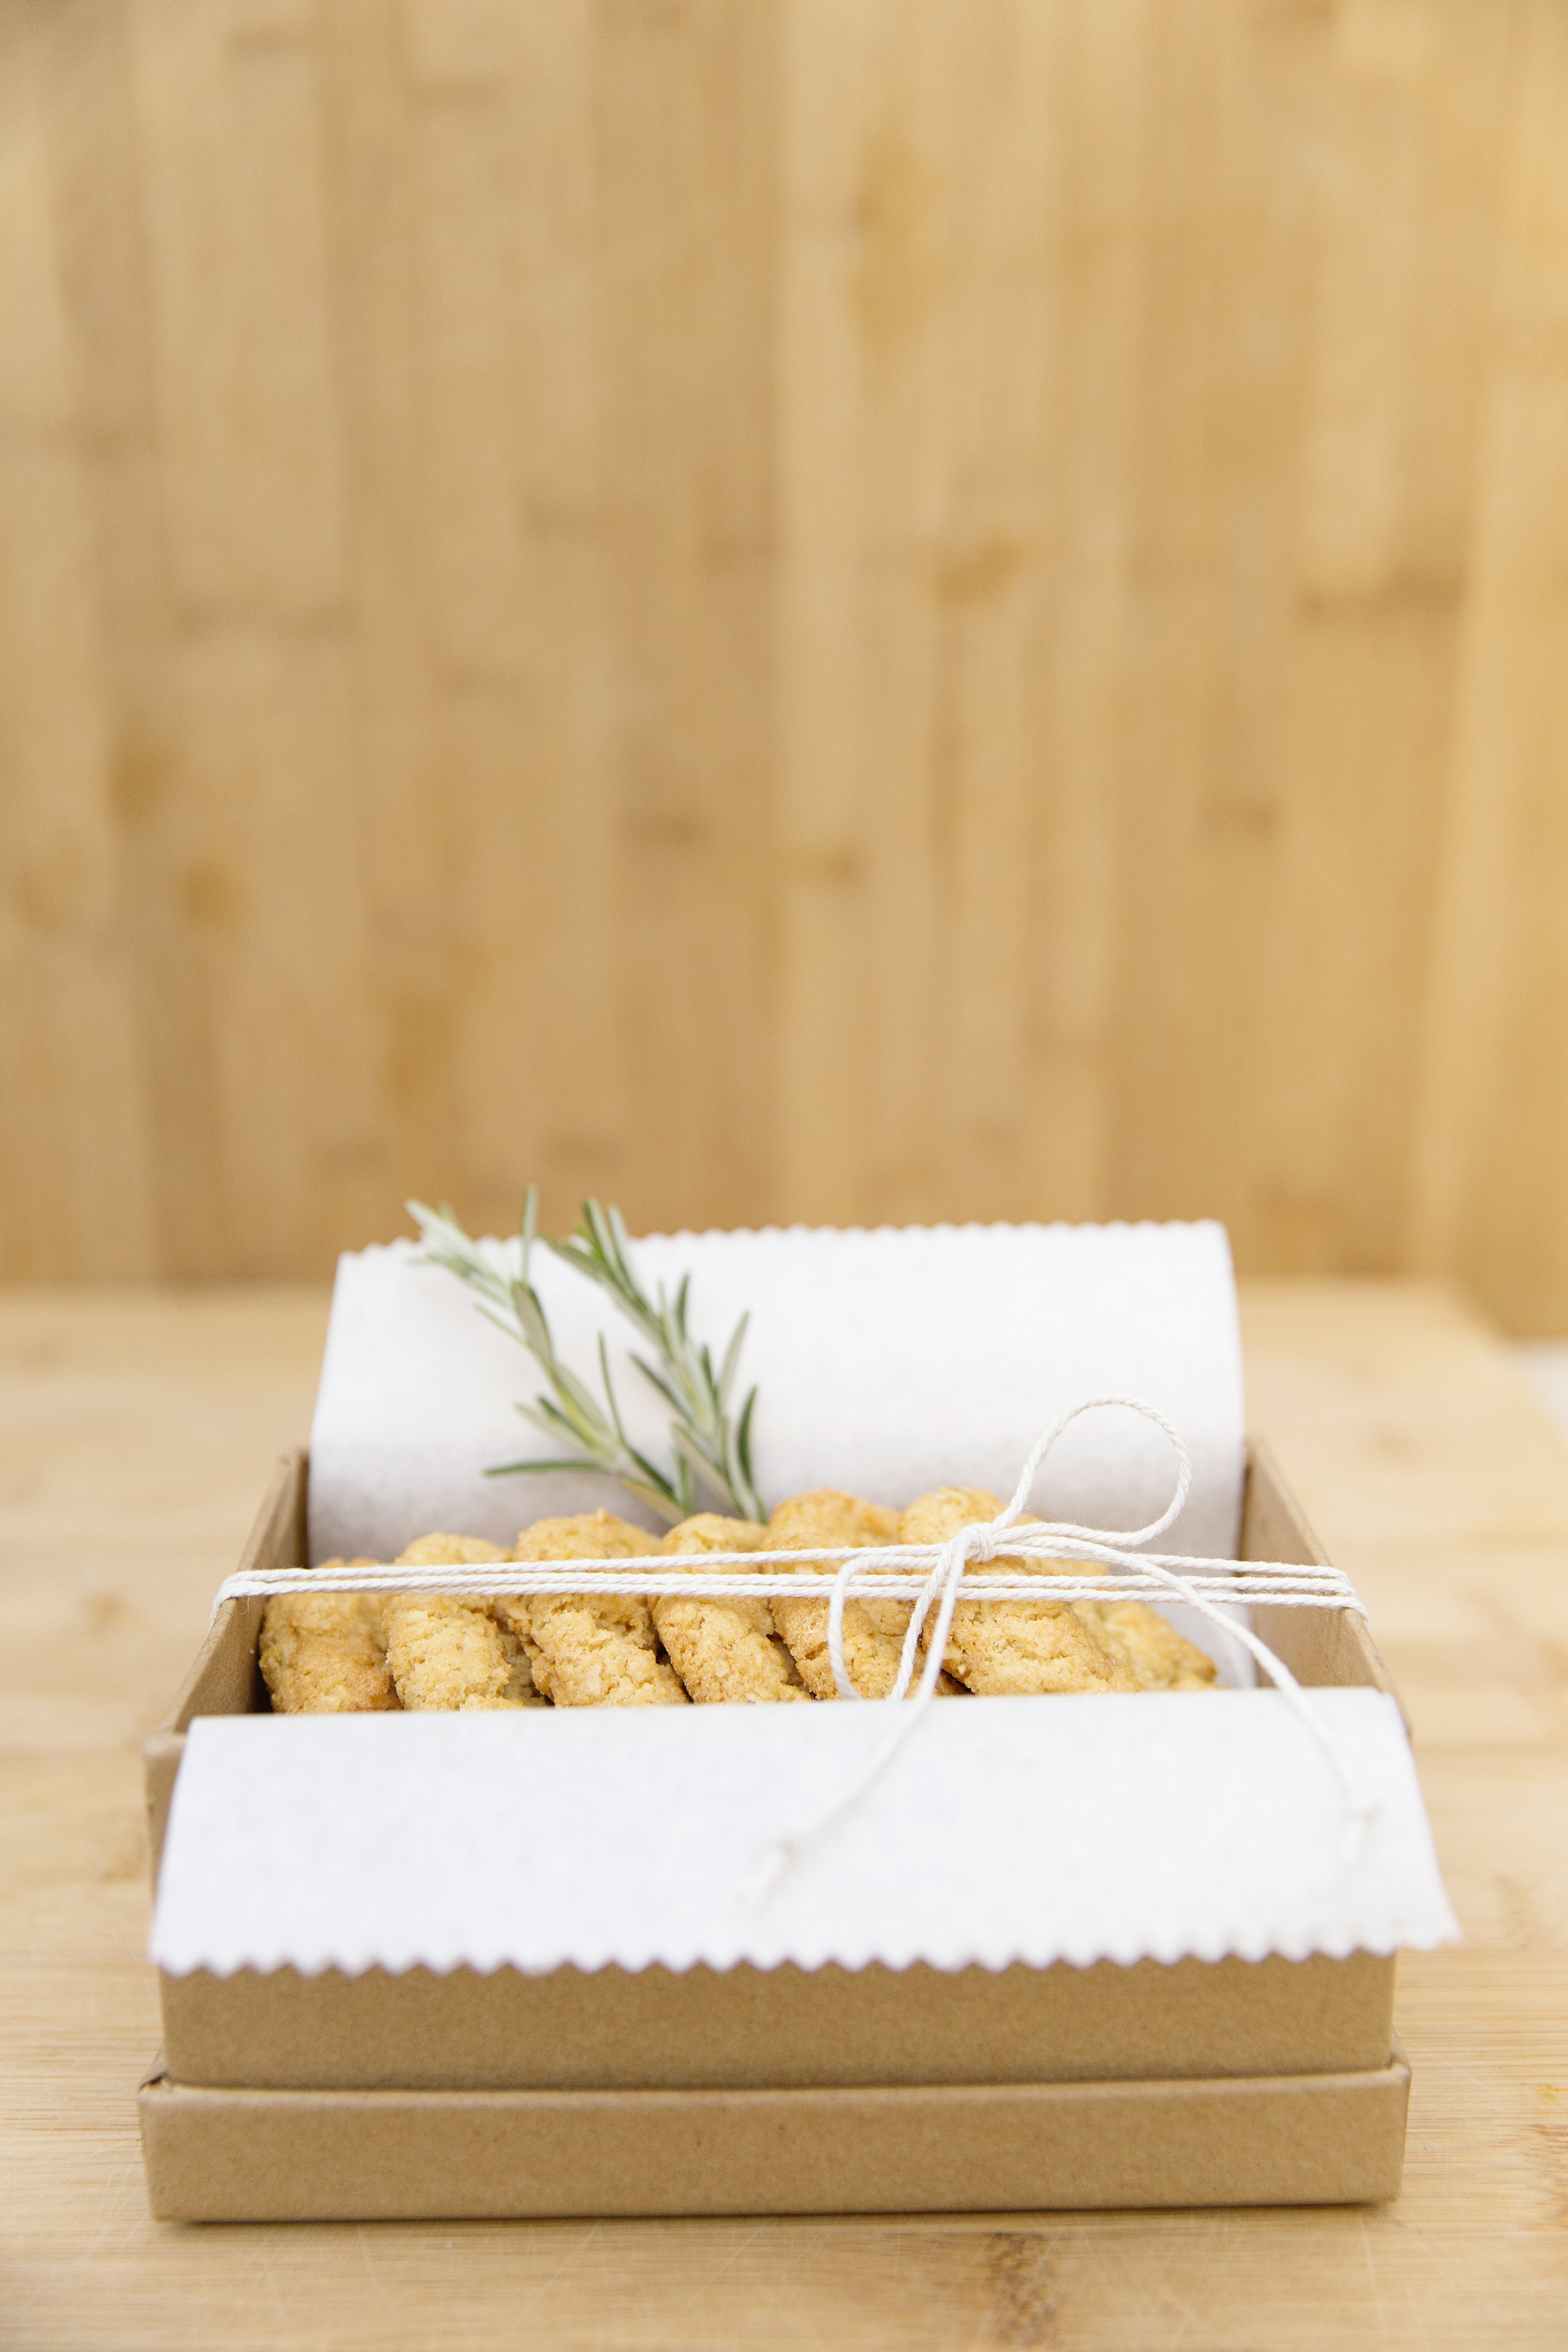 ANZAC Biscuits 023.jpg